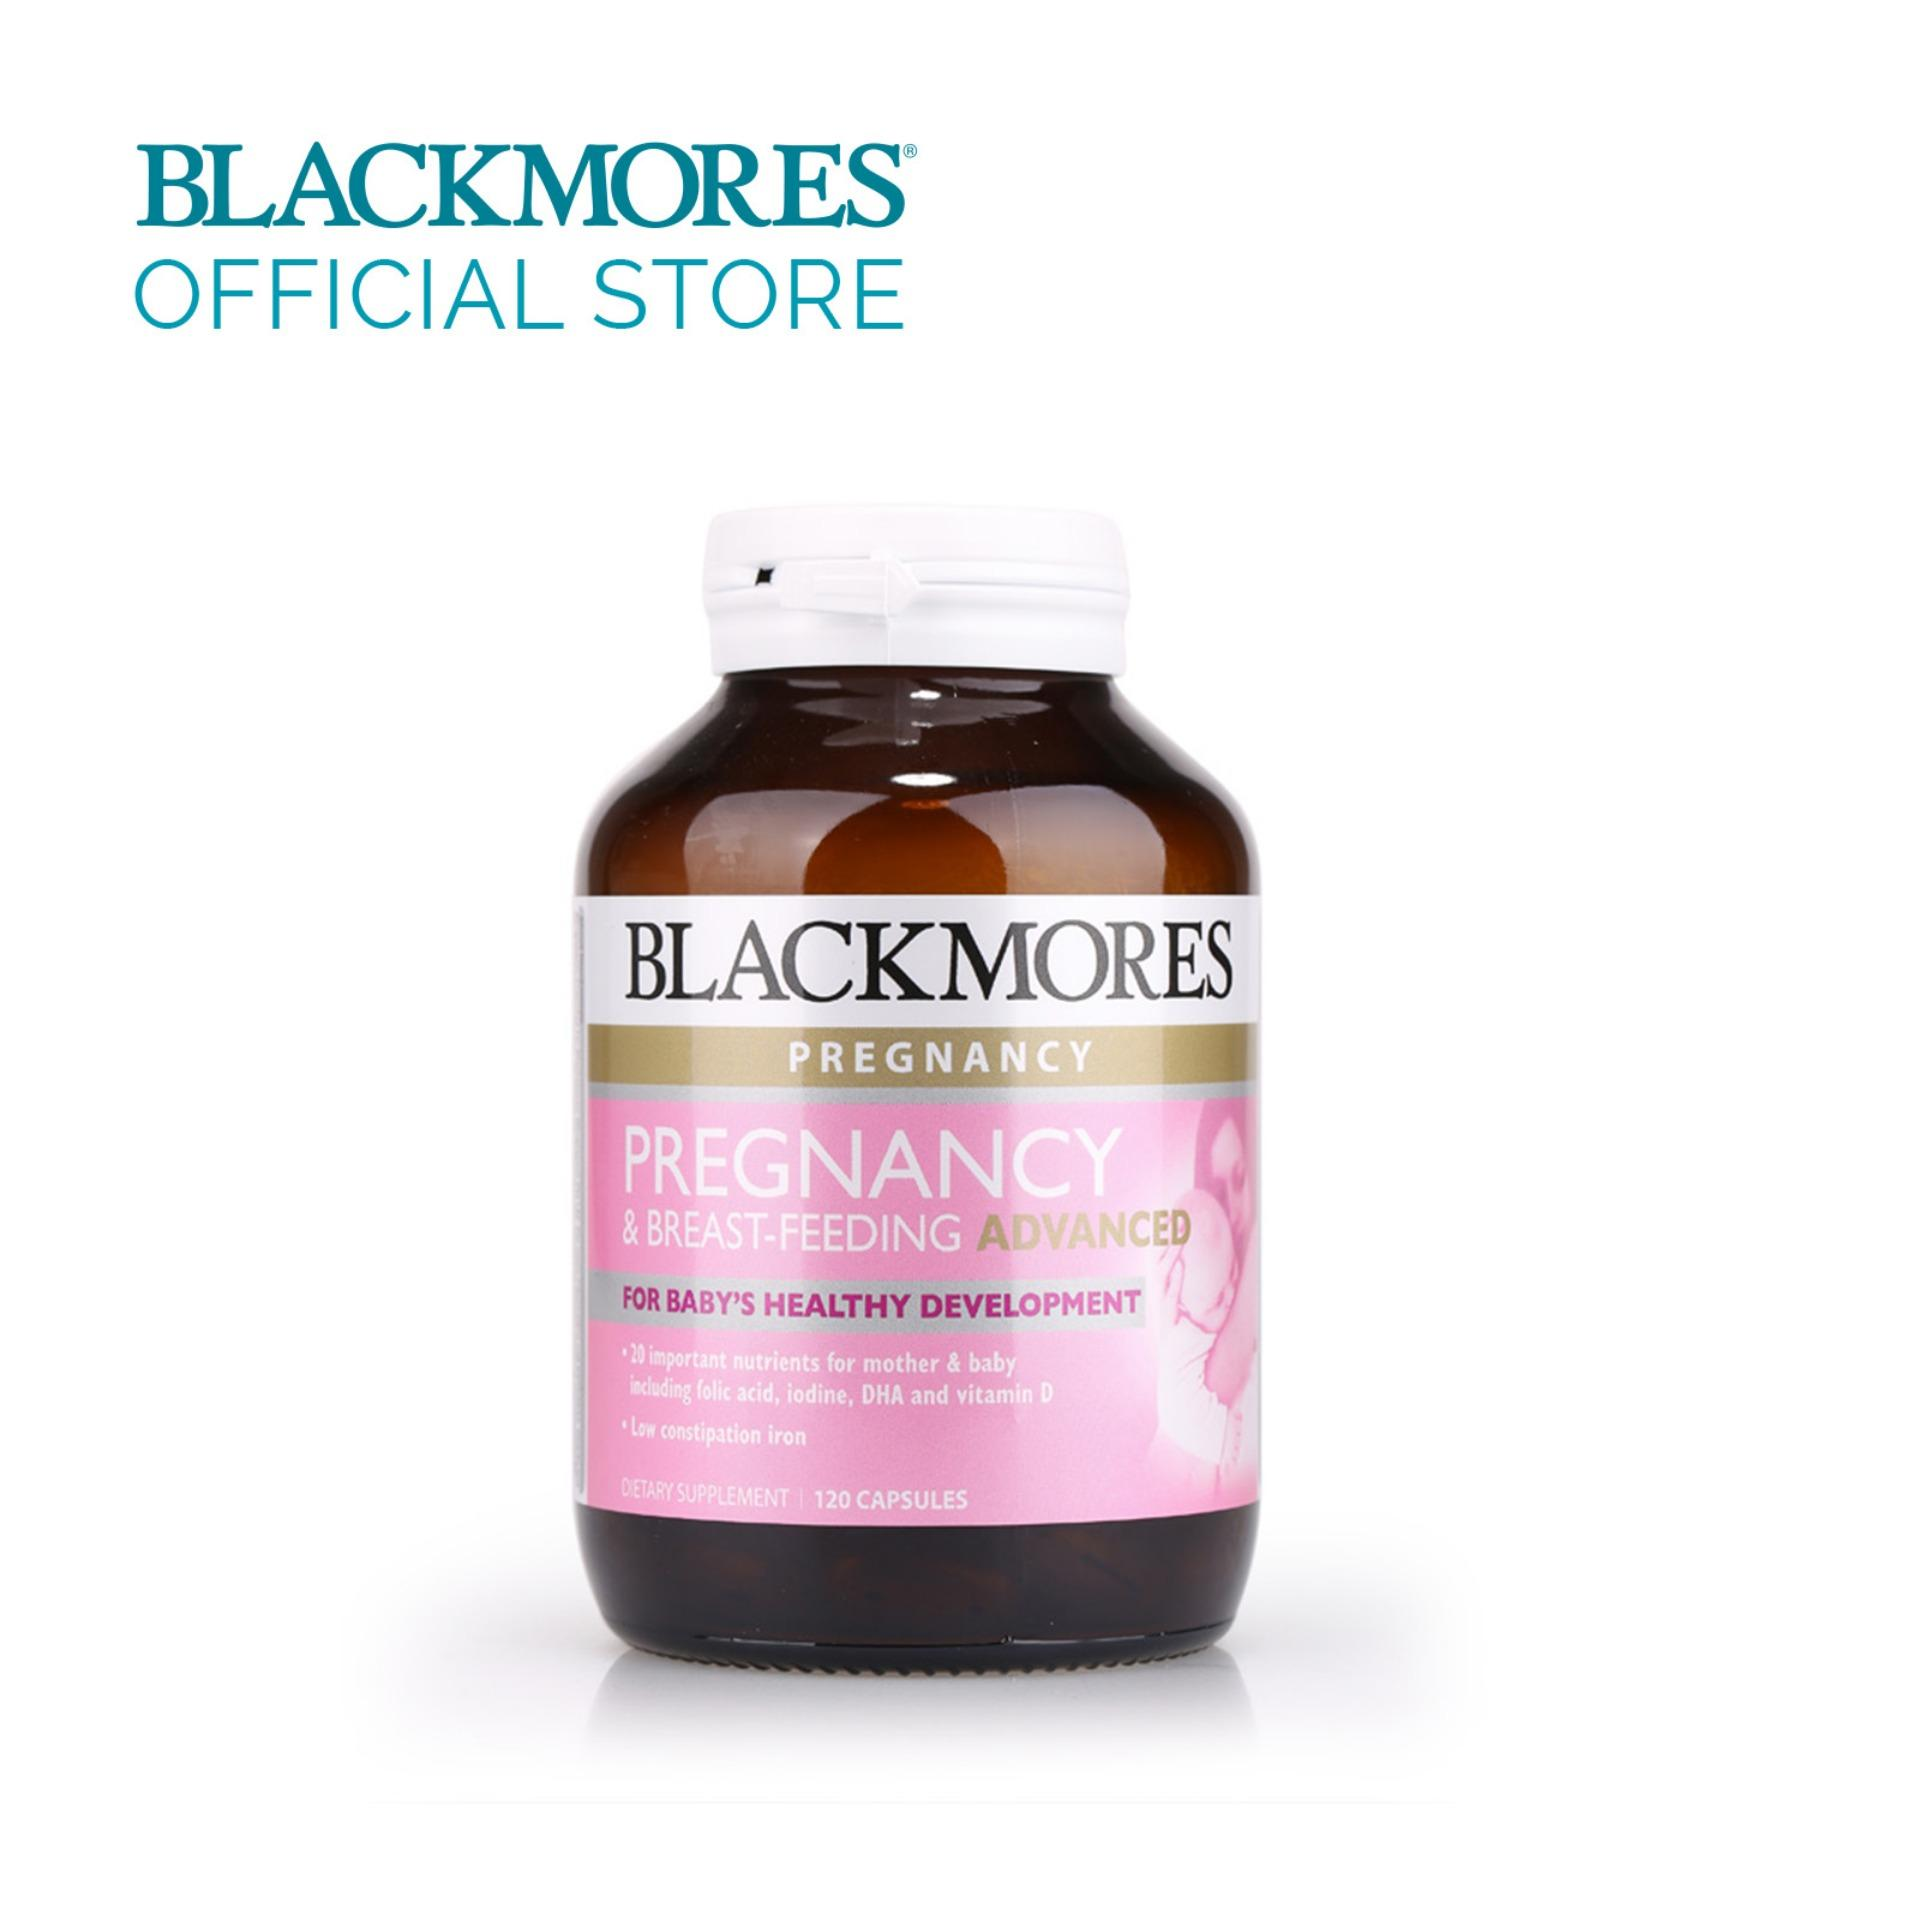 Blackmores Pregnancy And Breastfeeding Advanced 120caps By Blackmores Official Store.